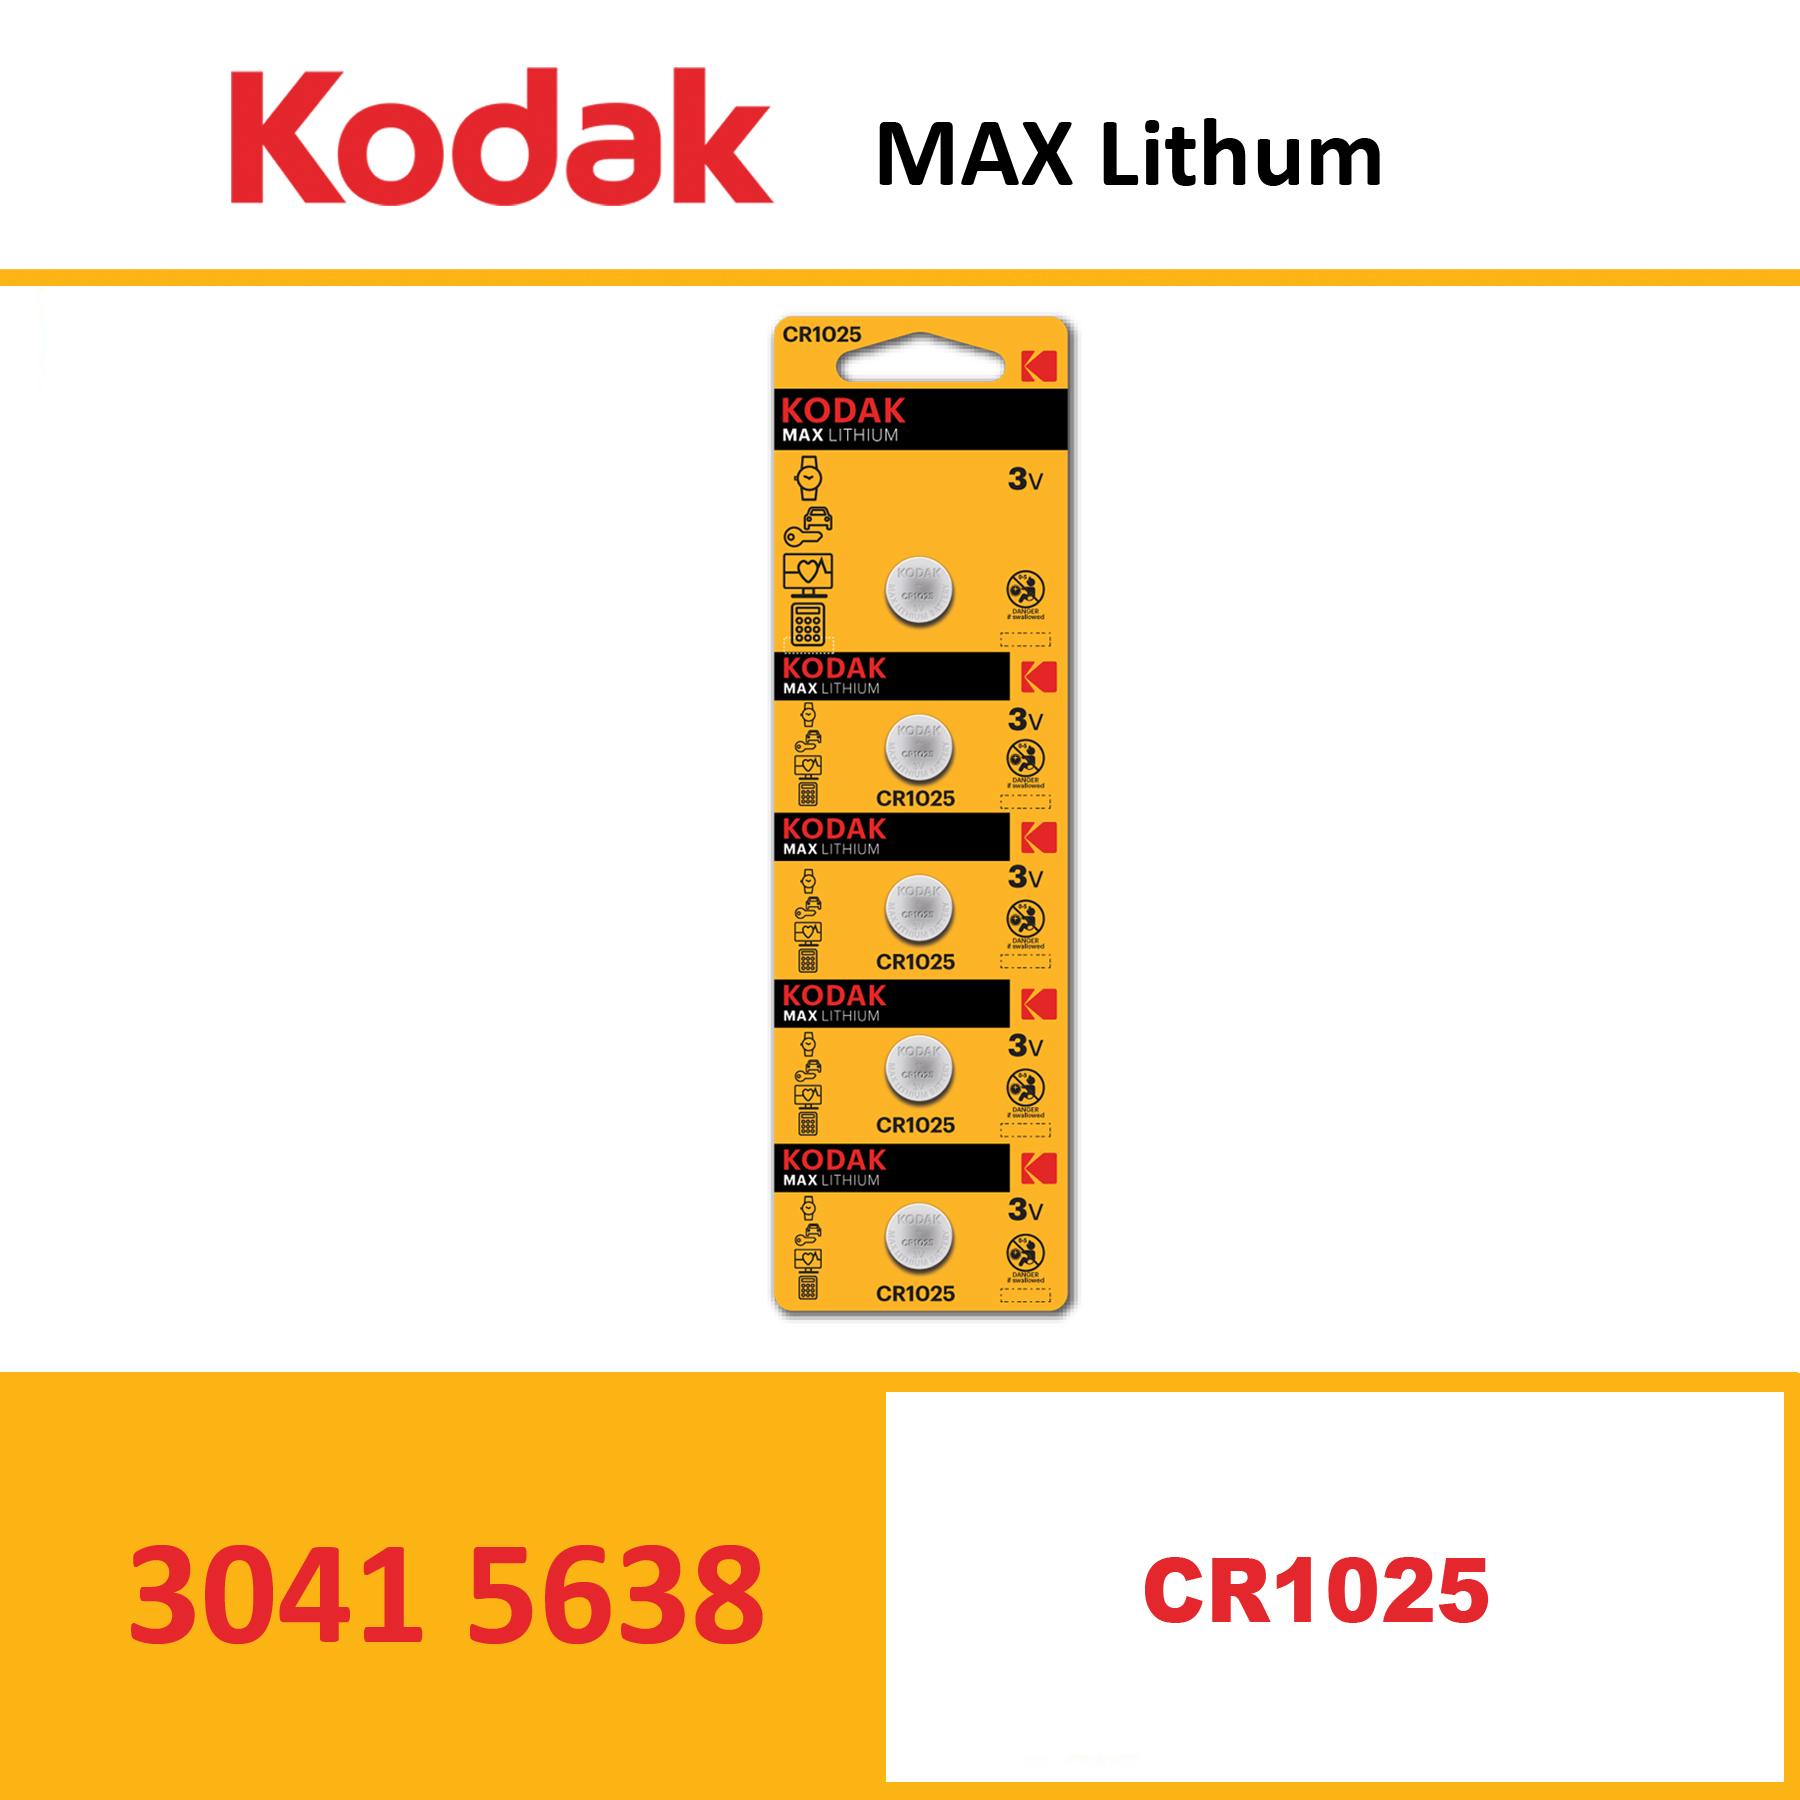 KODAK KCR1025 MAX Lithium coin cell Pack of 5 Piece